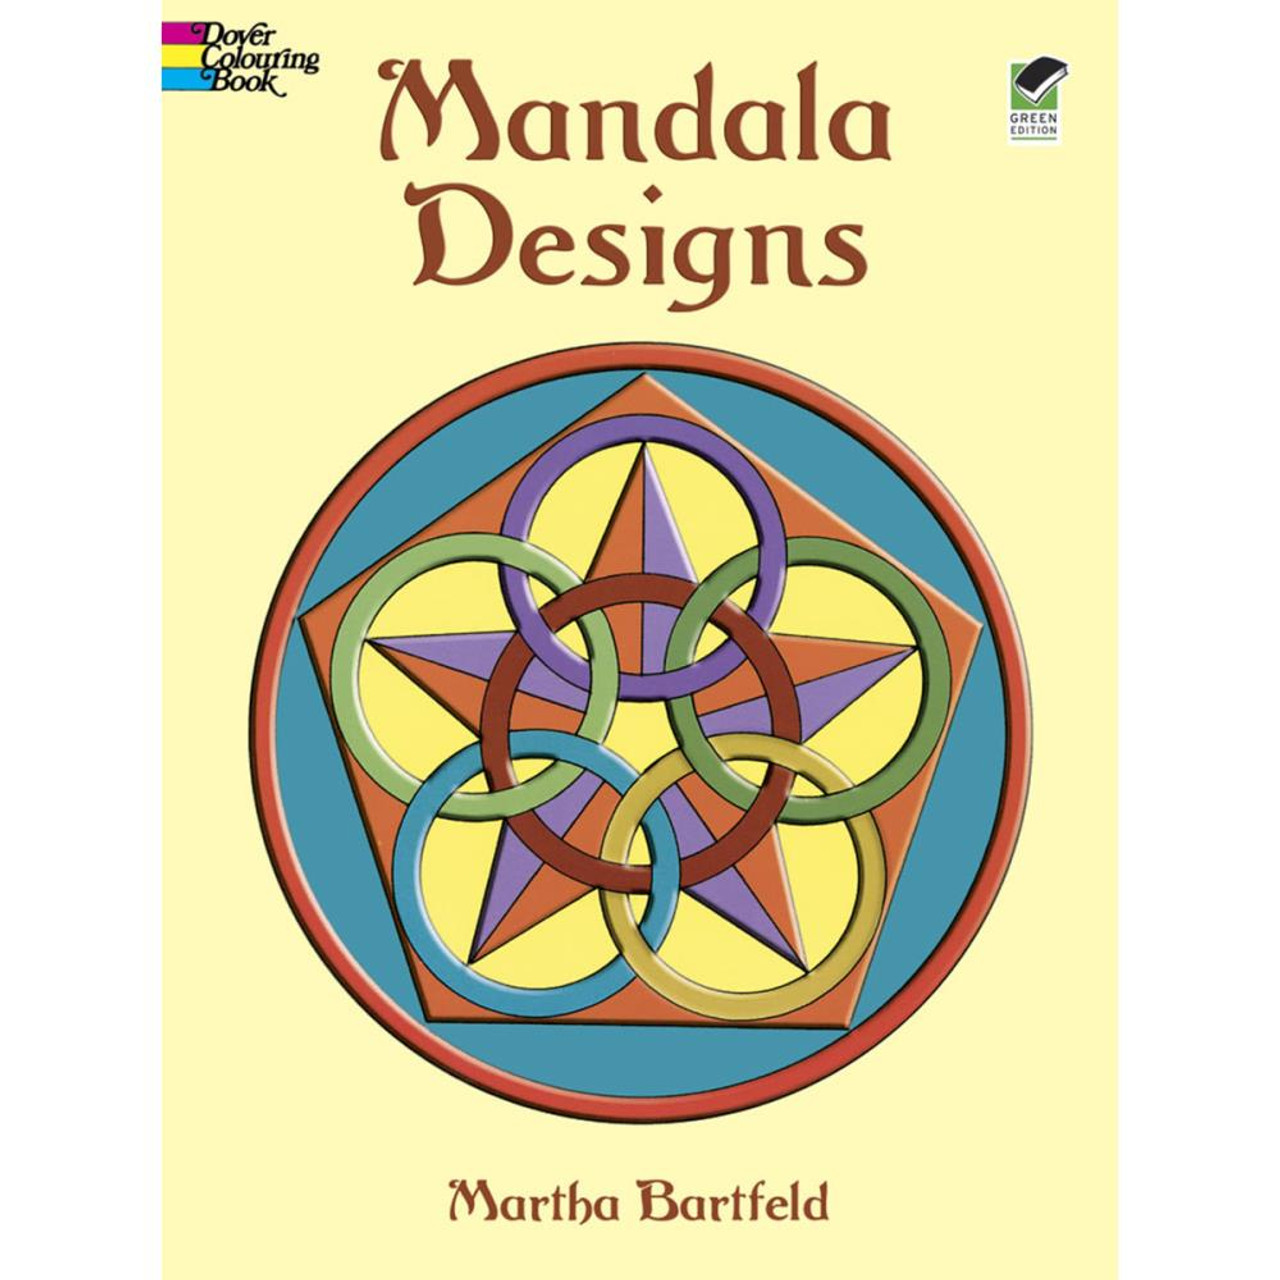 Dover Publications Coloring Book: Mandala Designs - Scrapbook Generation